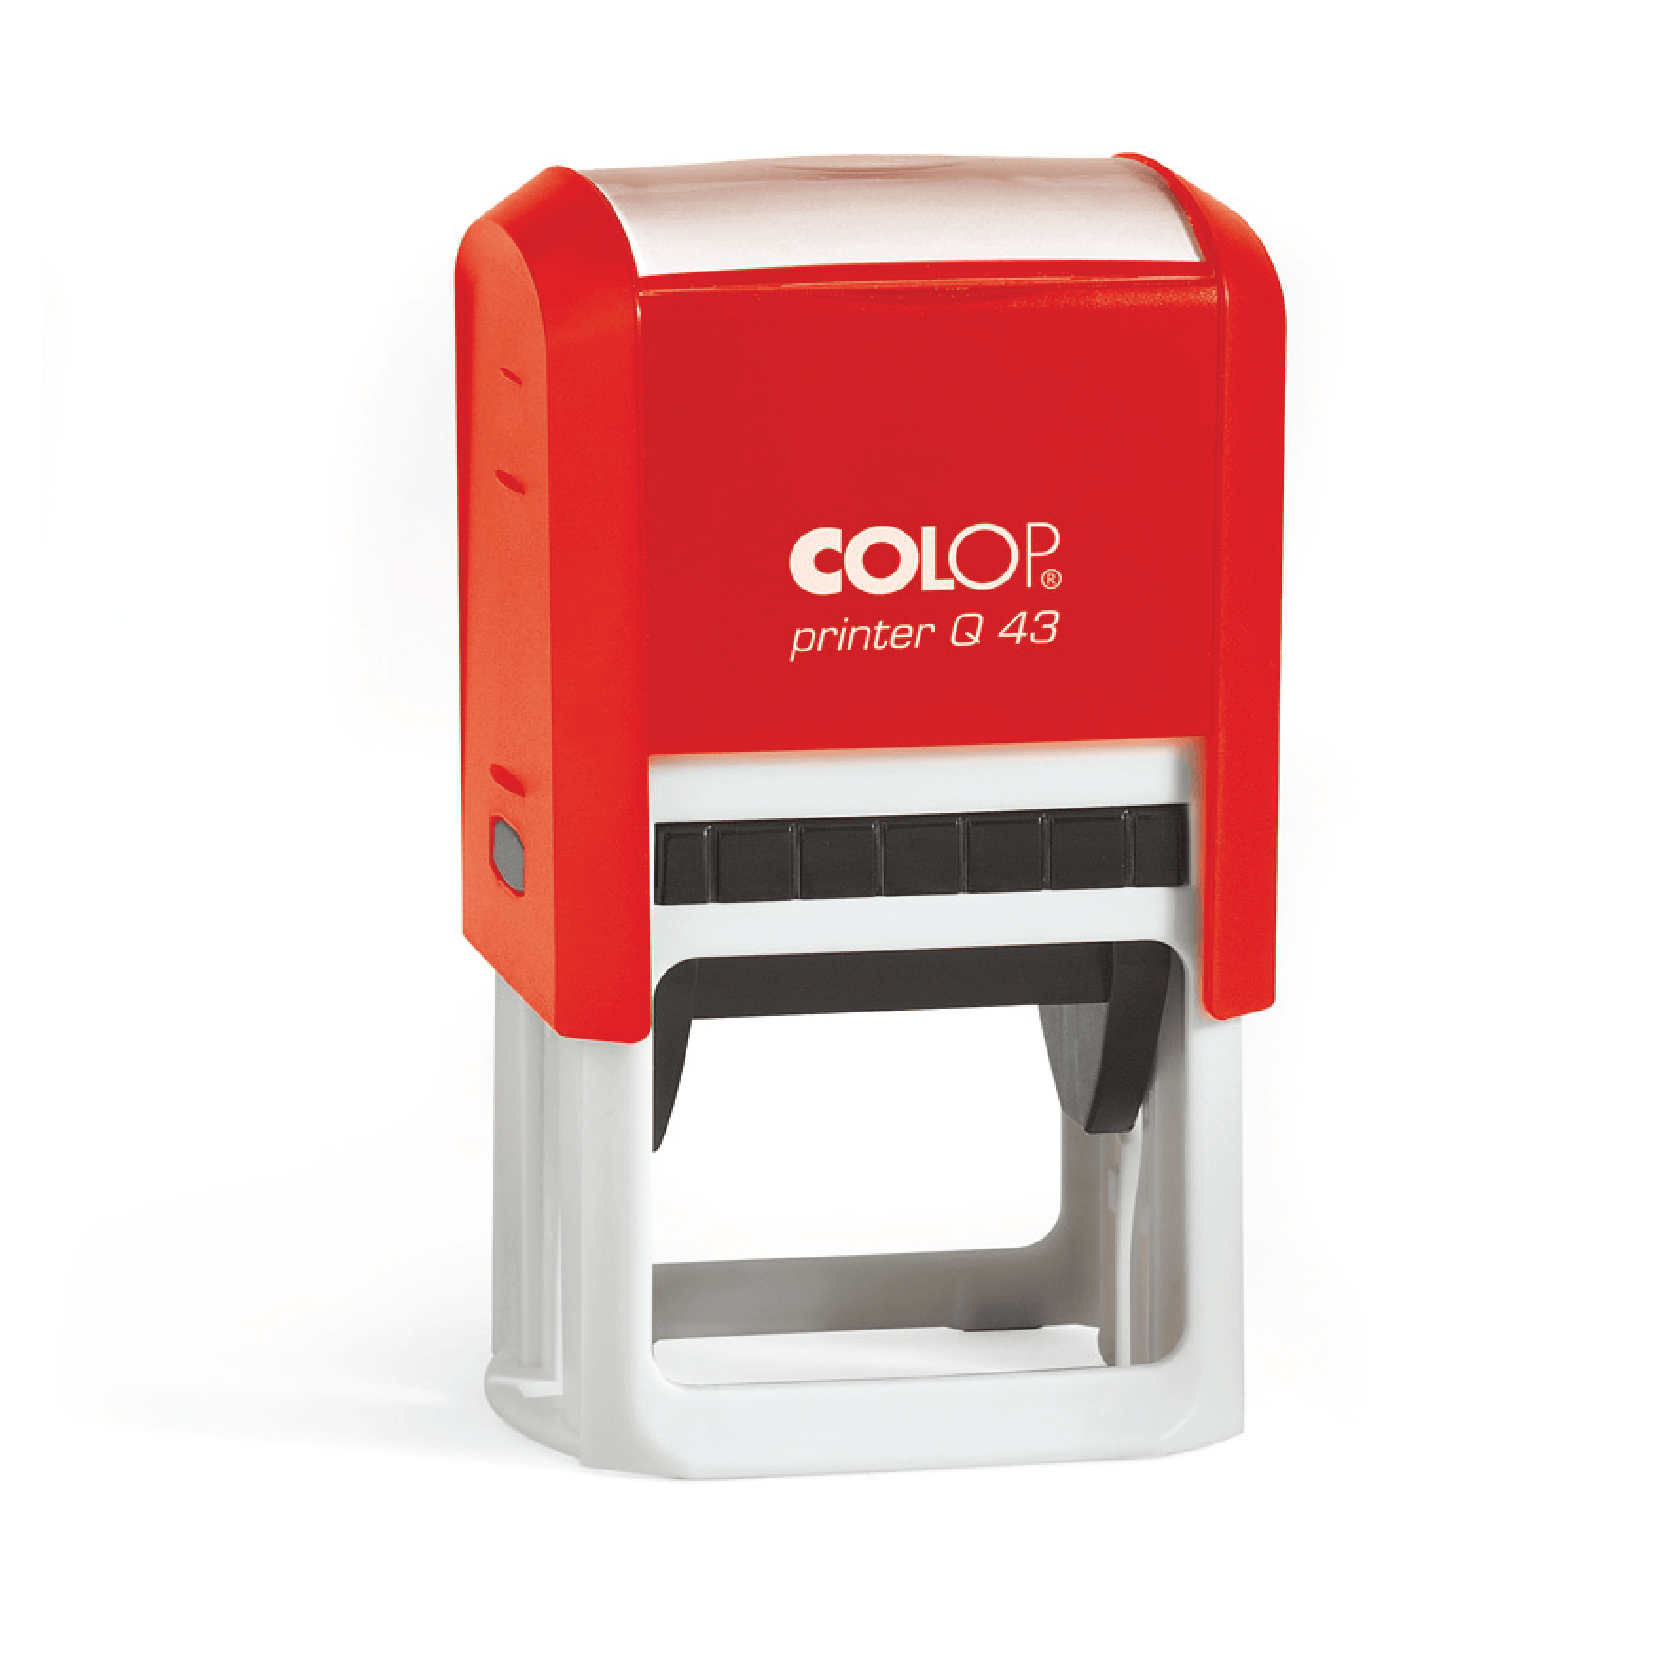 COLOP Printer Square Q43 red